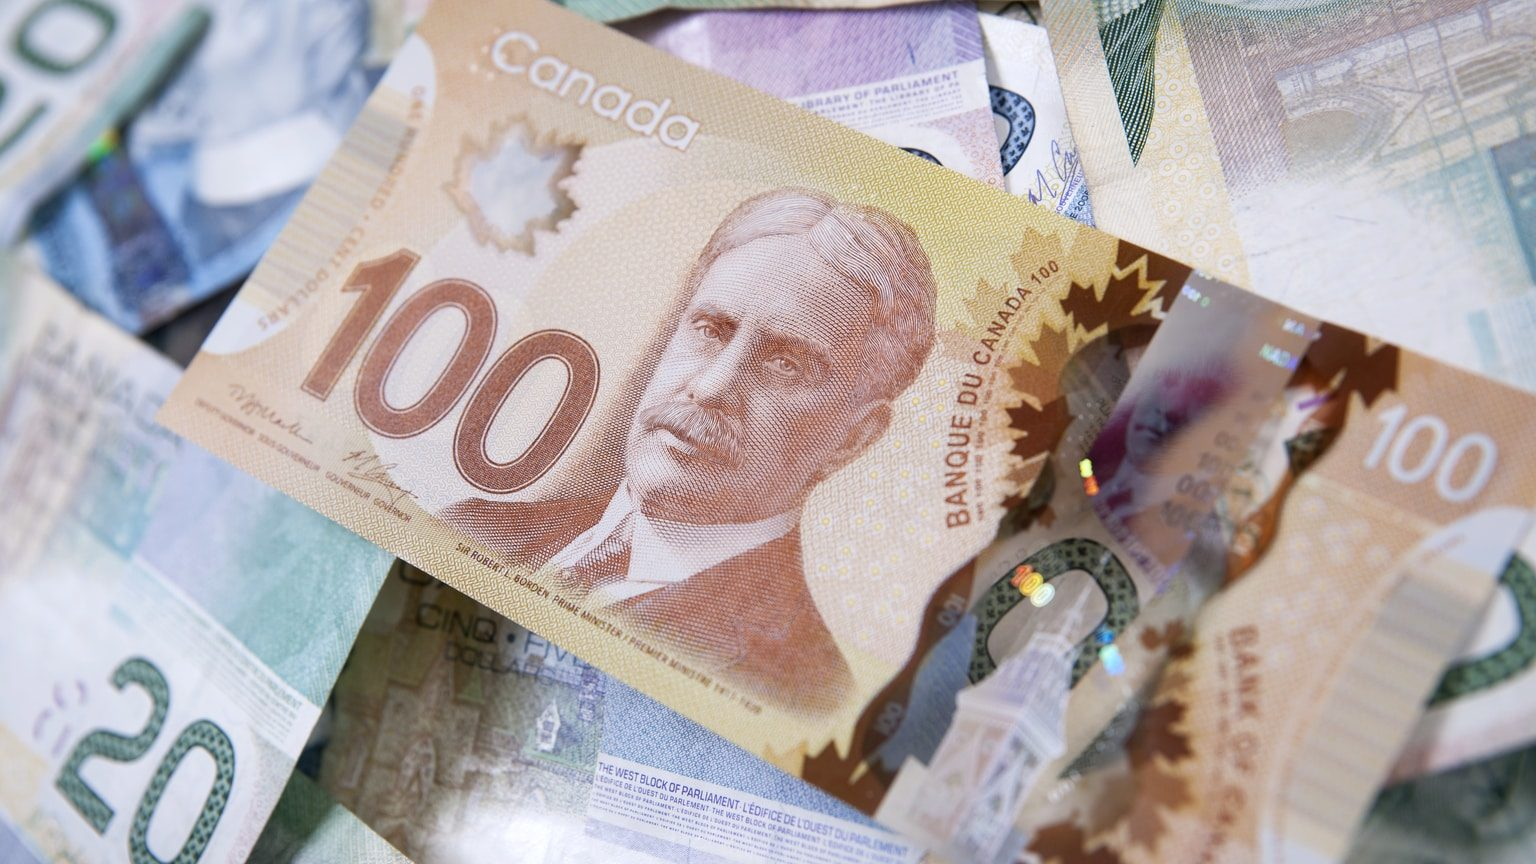 One hundred dollar bill on pile of Canadian money